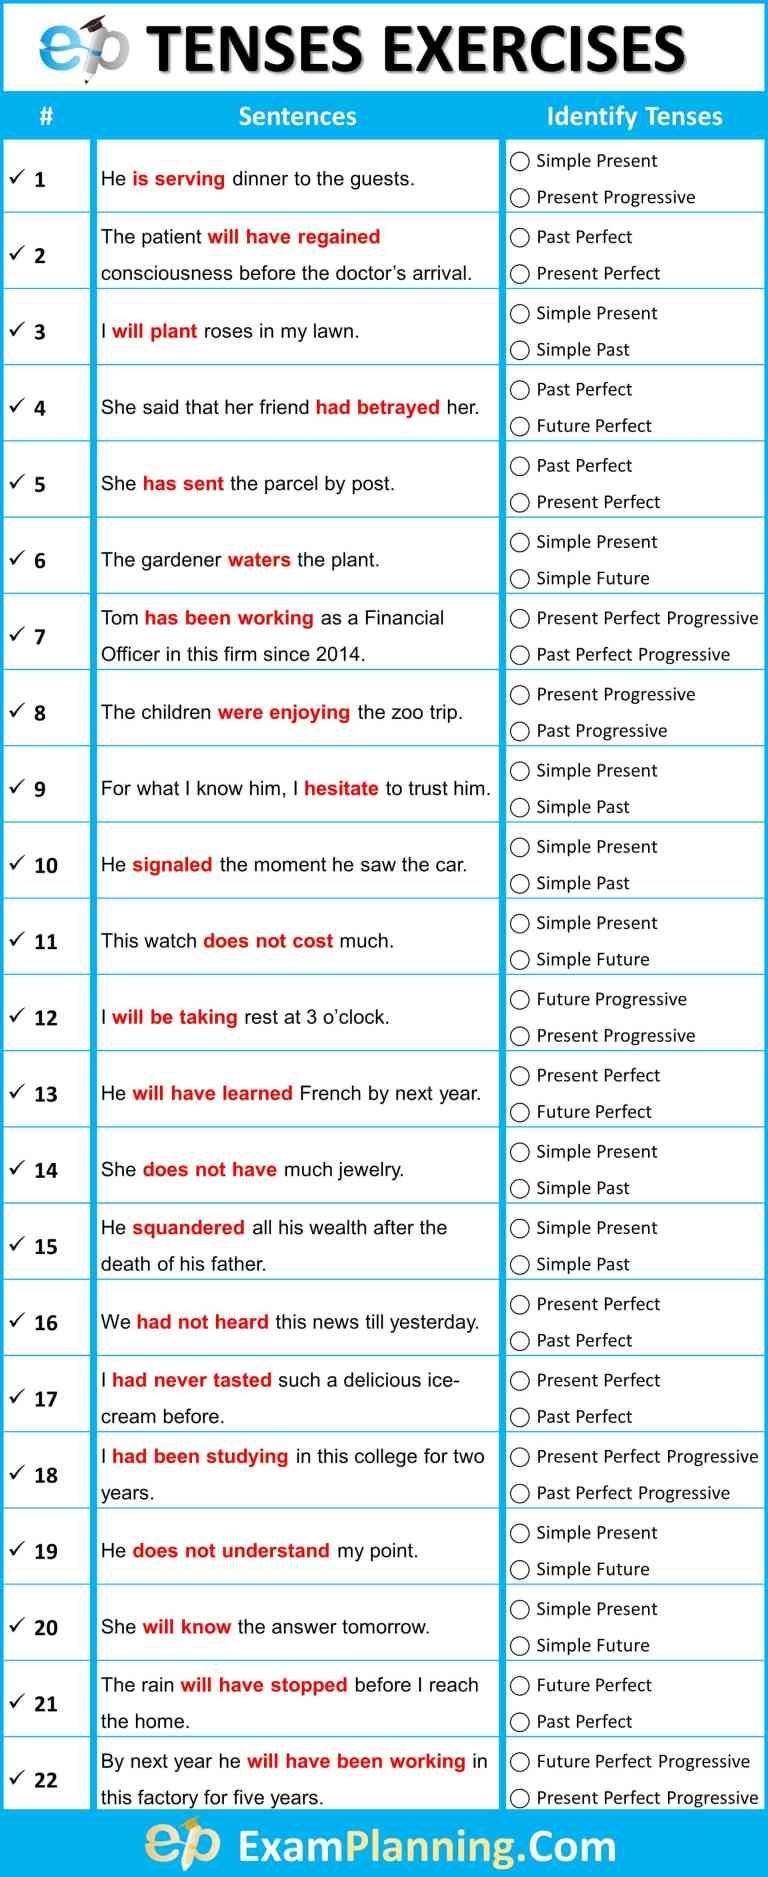 Mixed Tenses Exercises With Answers Examplanning Tenses Exercises English Grammar Exercises English Tenses Exercises [ 1877 x 768 Pixel ]